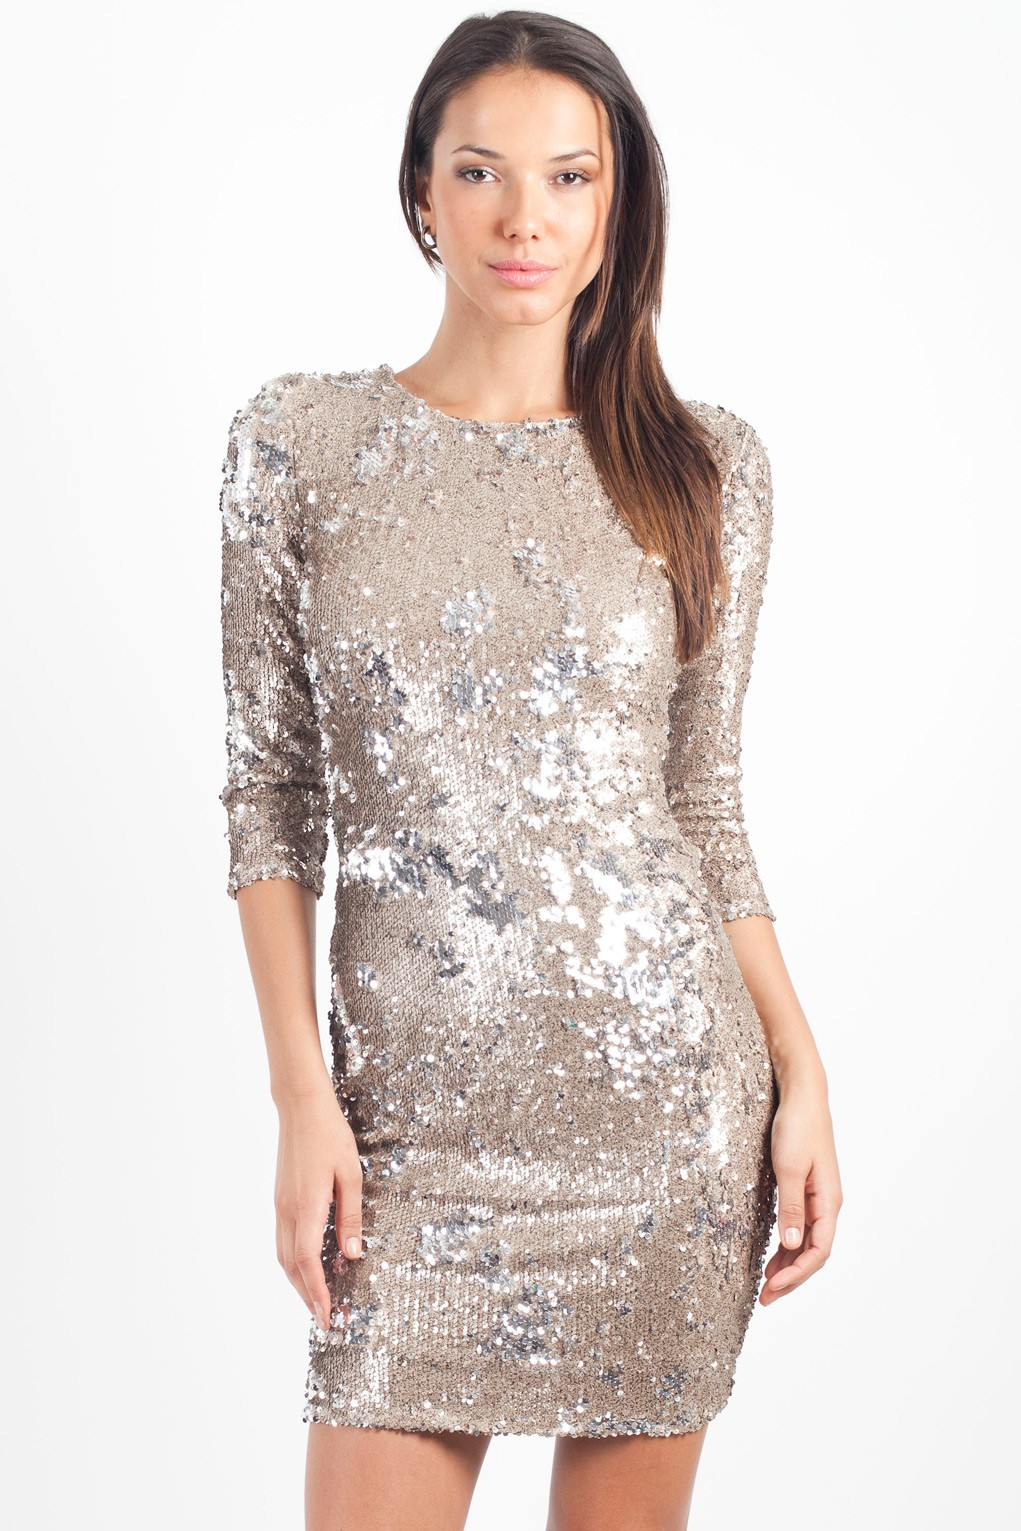 TFNC PARIS TARNISHED TWO-TONE SEQUIN DRESS  TFNC PARTY DRESSES